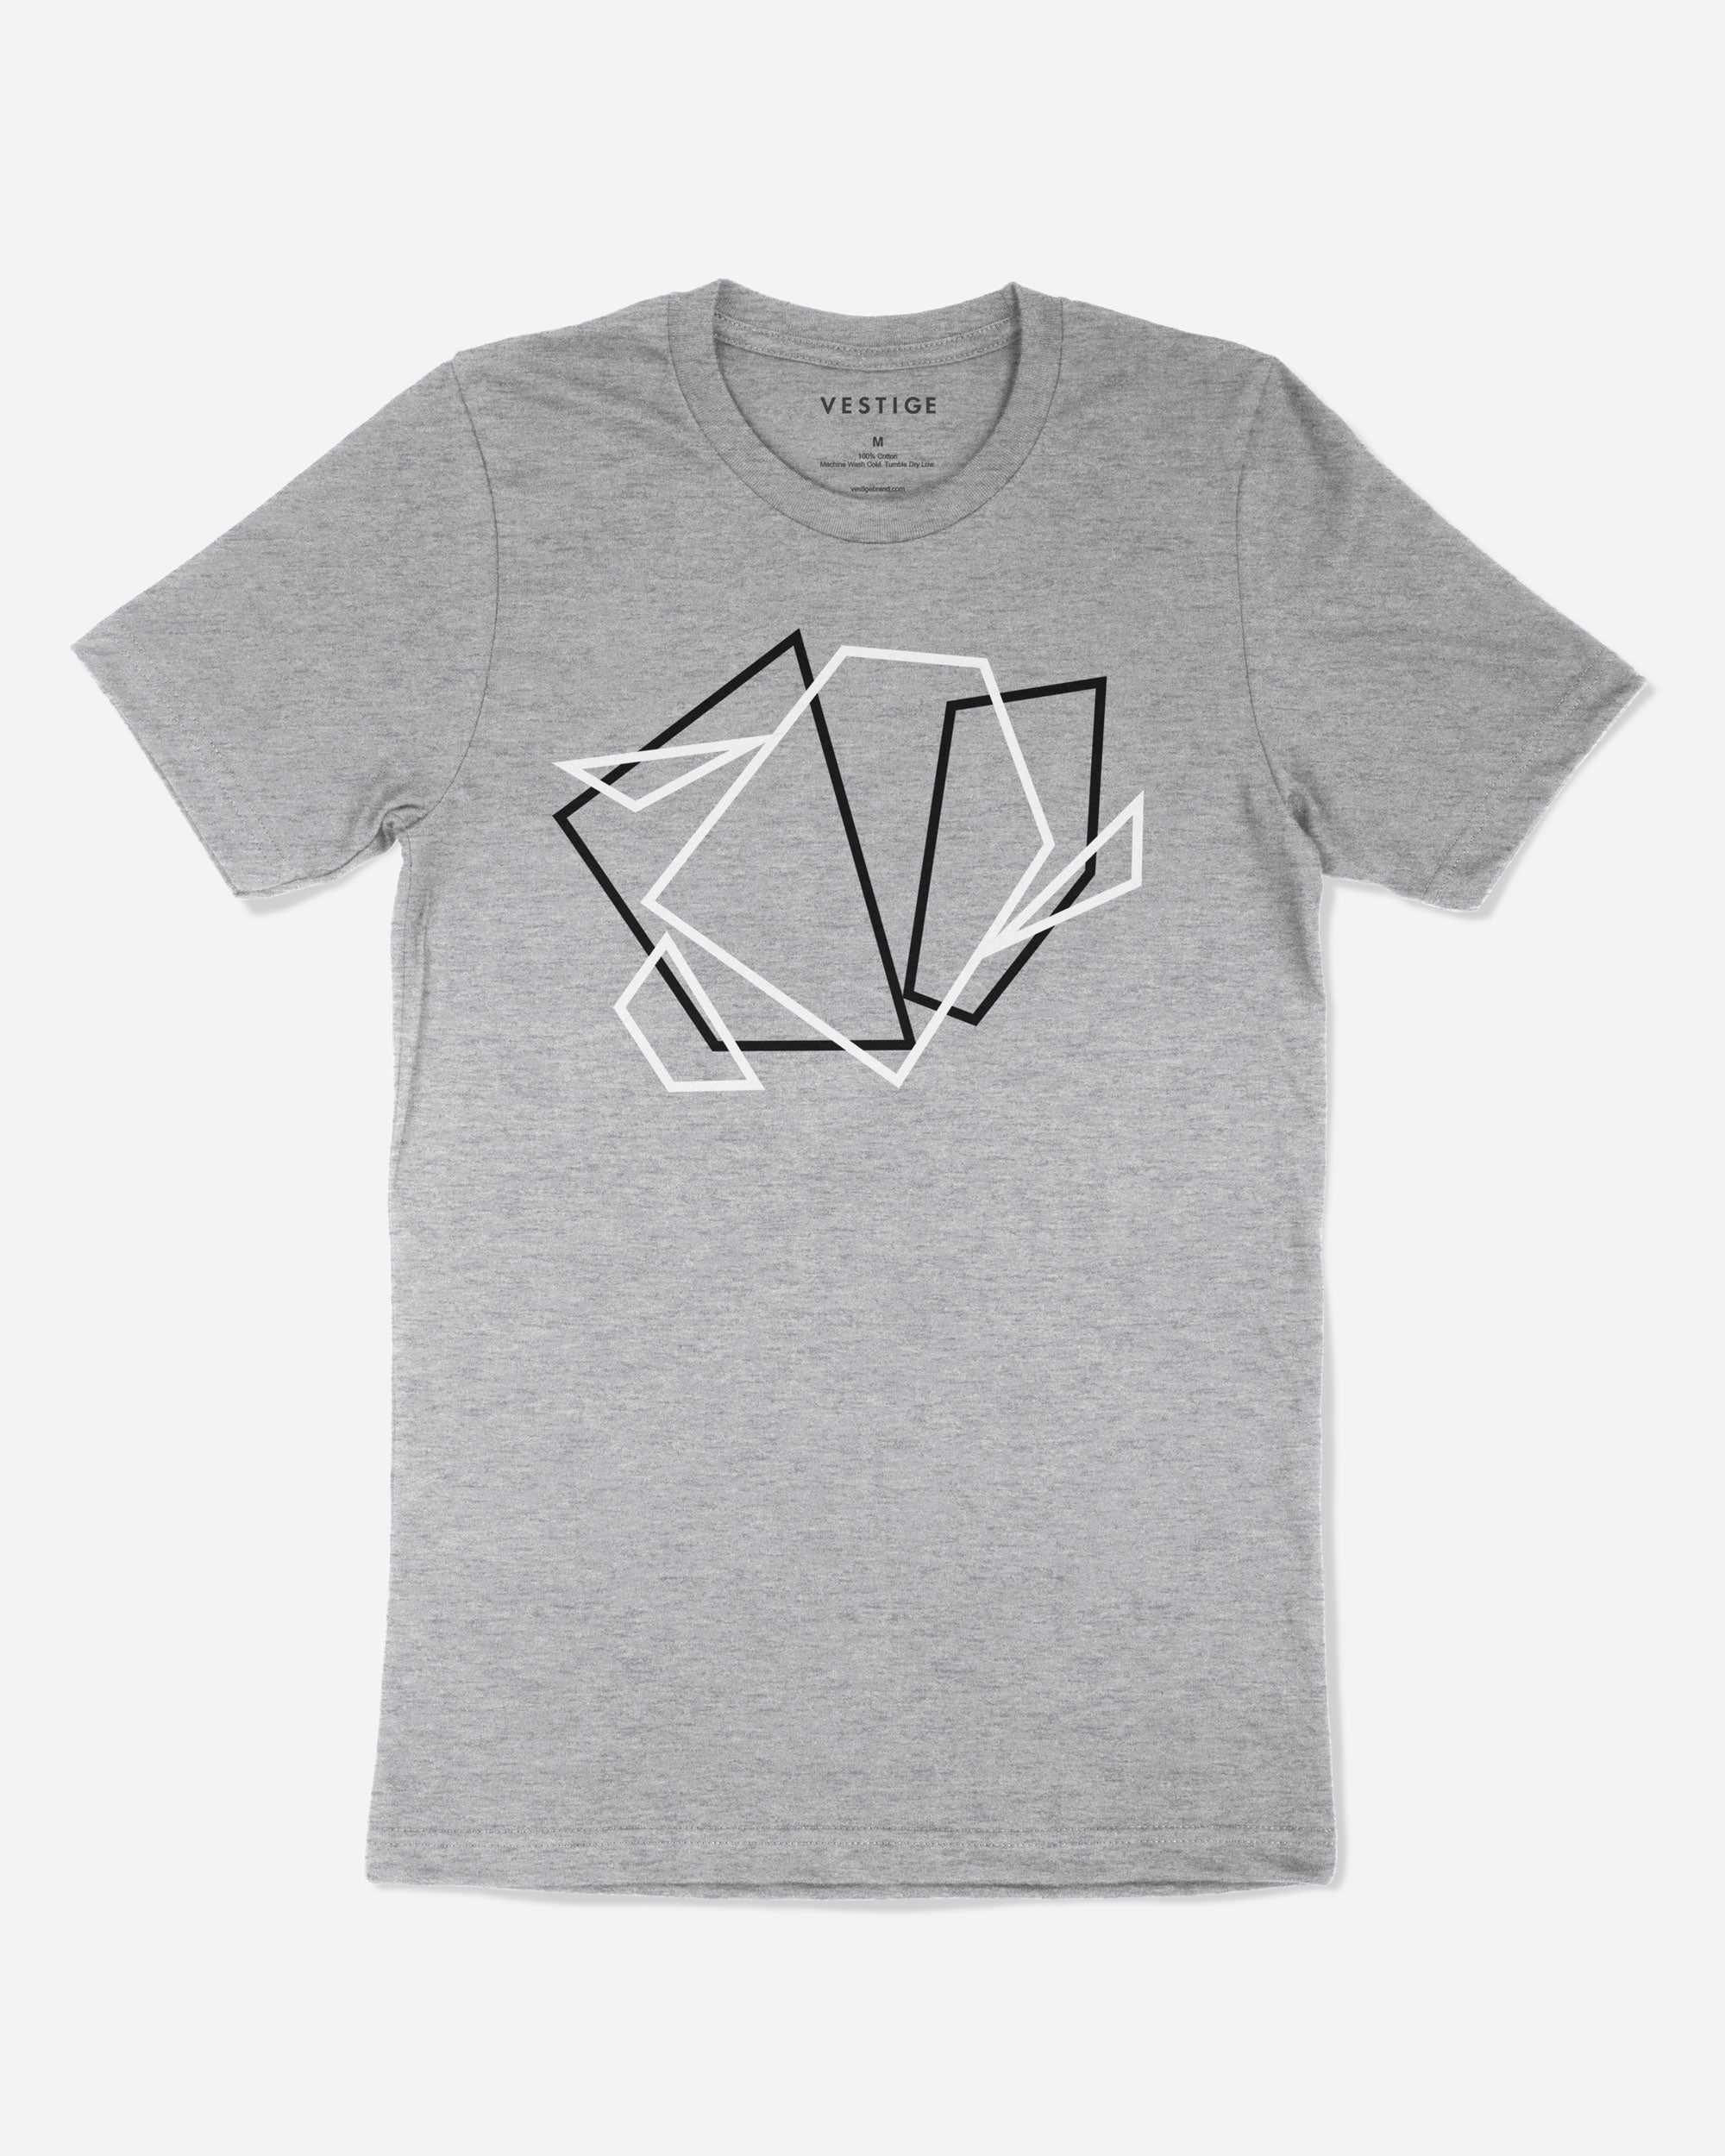 Shape Tangle Redux T-Shirt, Light Grey